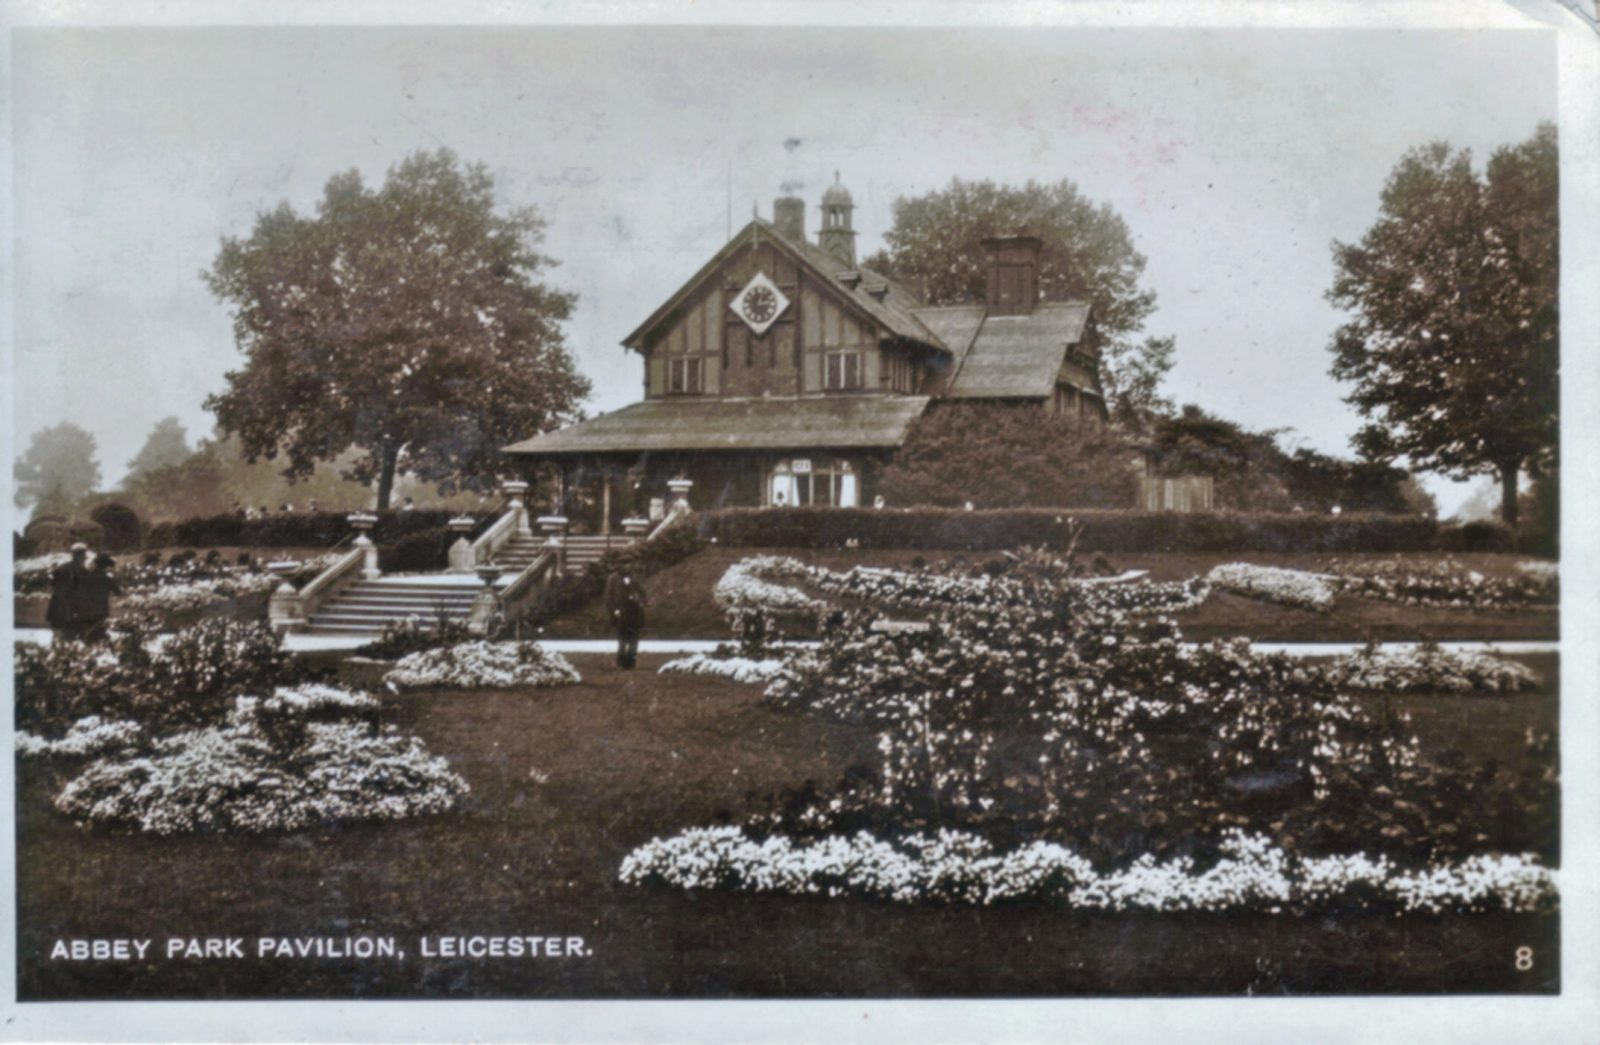 Abbey Park, Leicester. 1921-1940: The Pavilion and formal bedding. (File:1271)